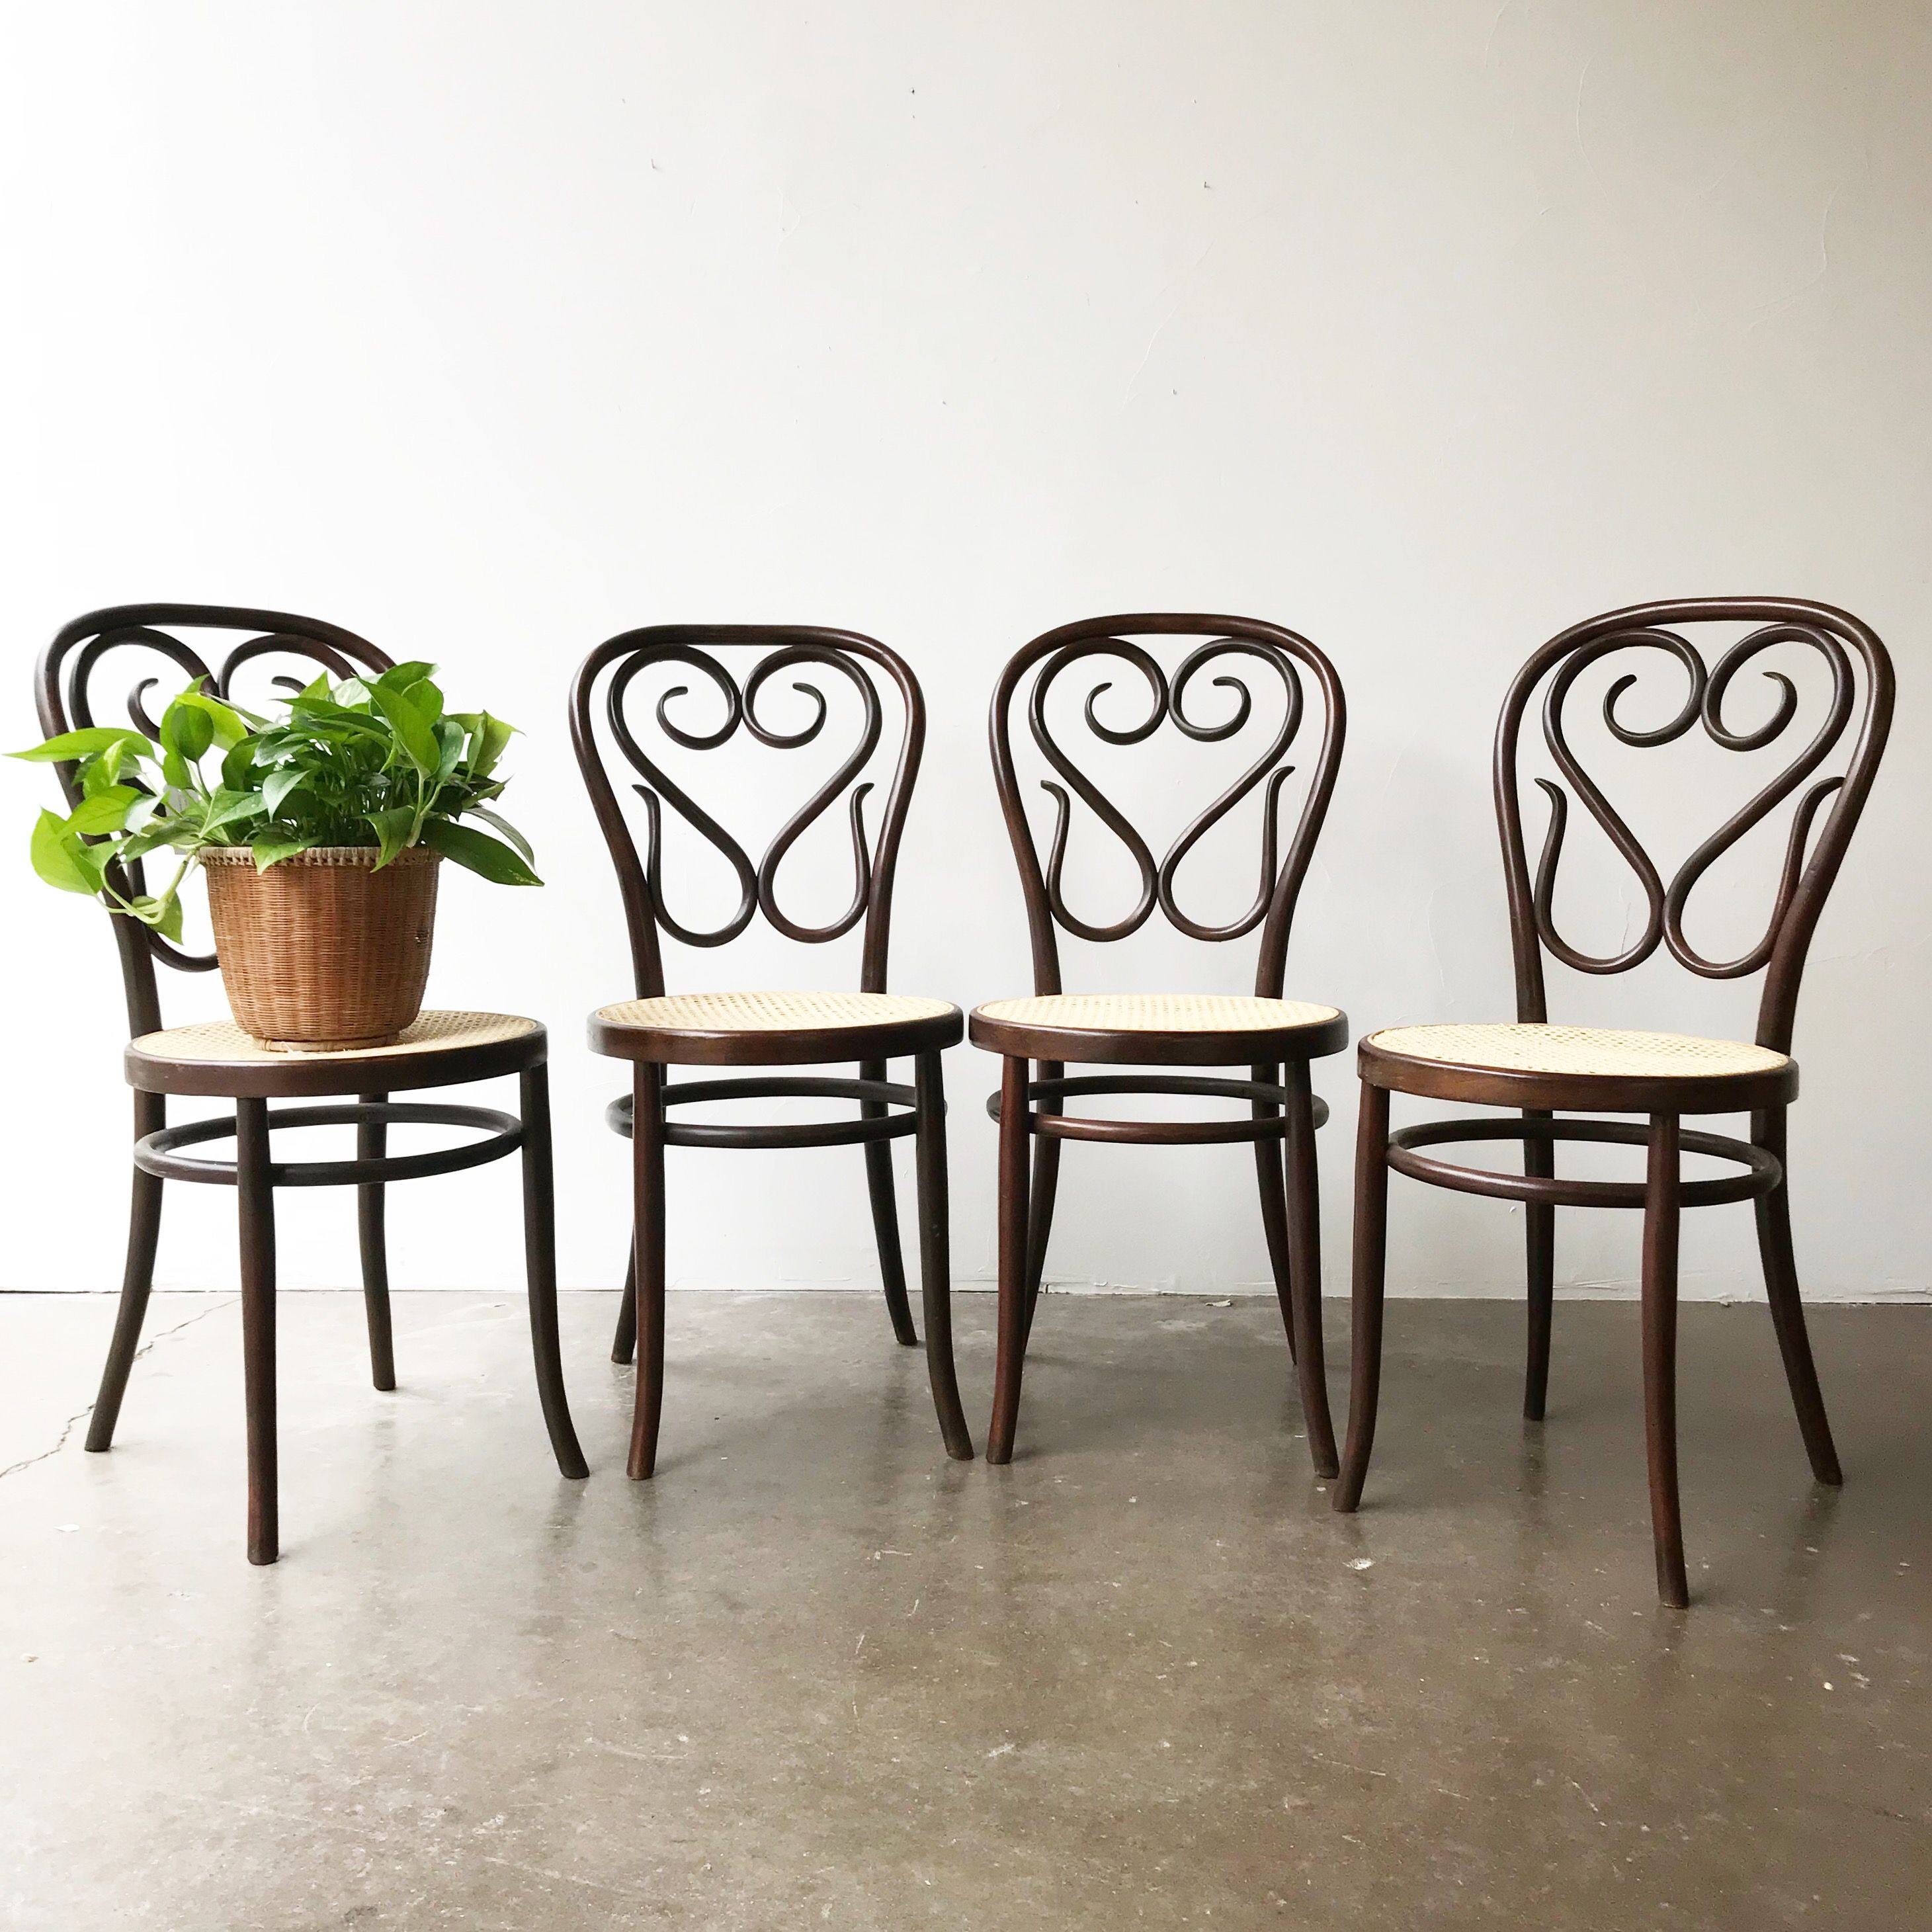 FOR SALE Set of 4 Vintage Bentwood and Cane Seat